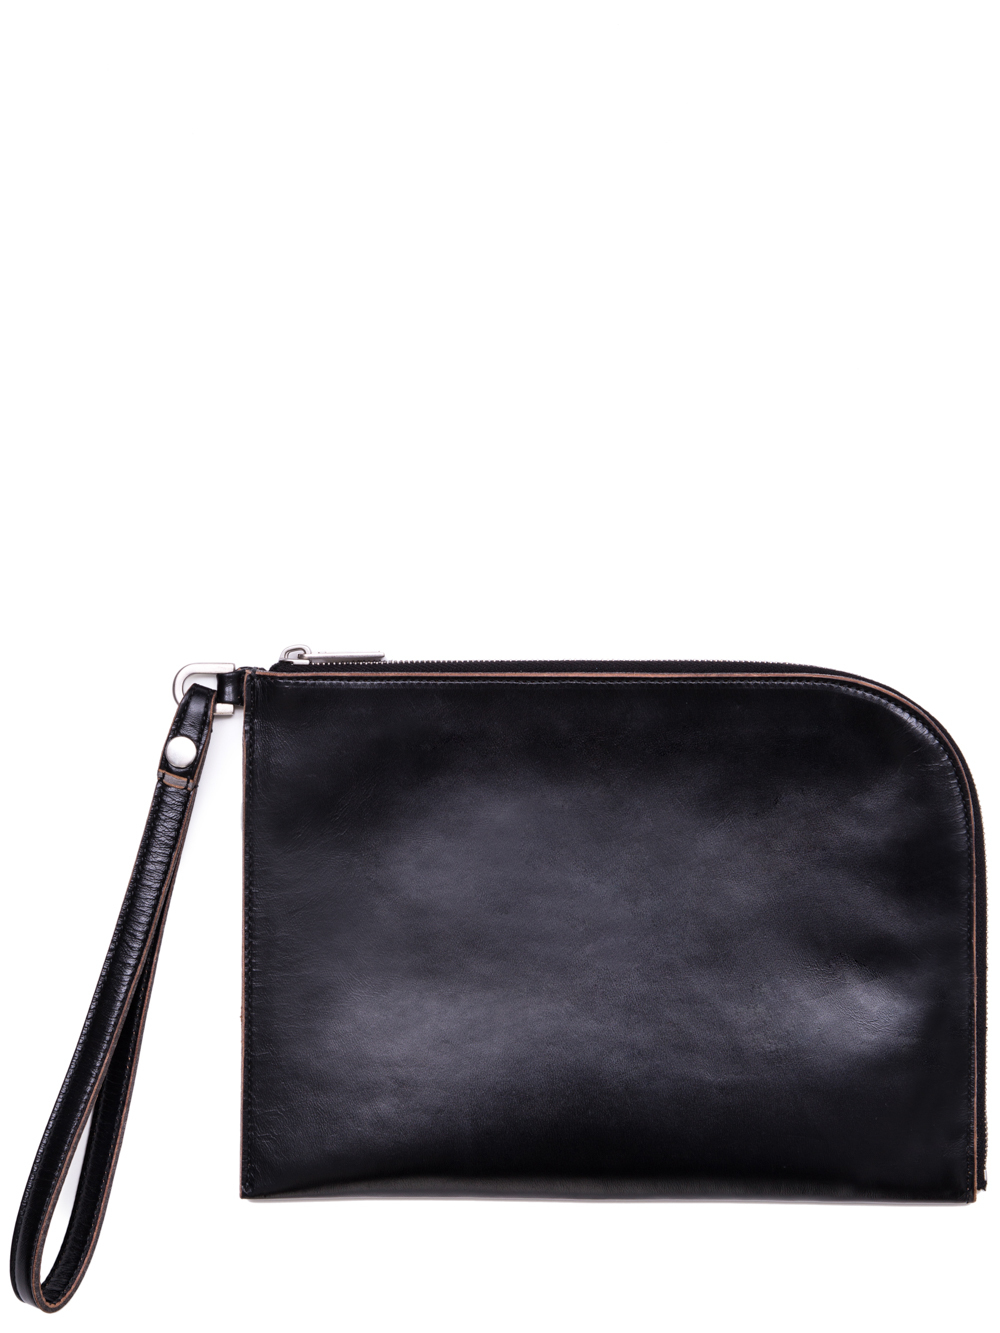 RICK OWENS SS19 BABEL TRAVEL POUCH IN BLACK LEATHER IS RECTANGULAR